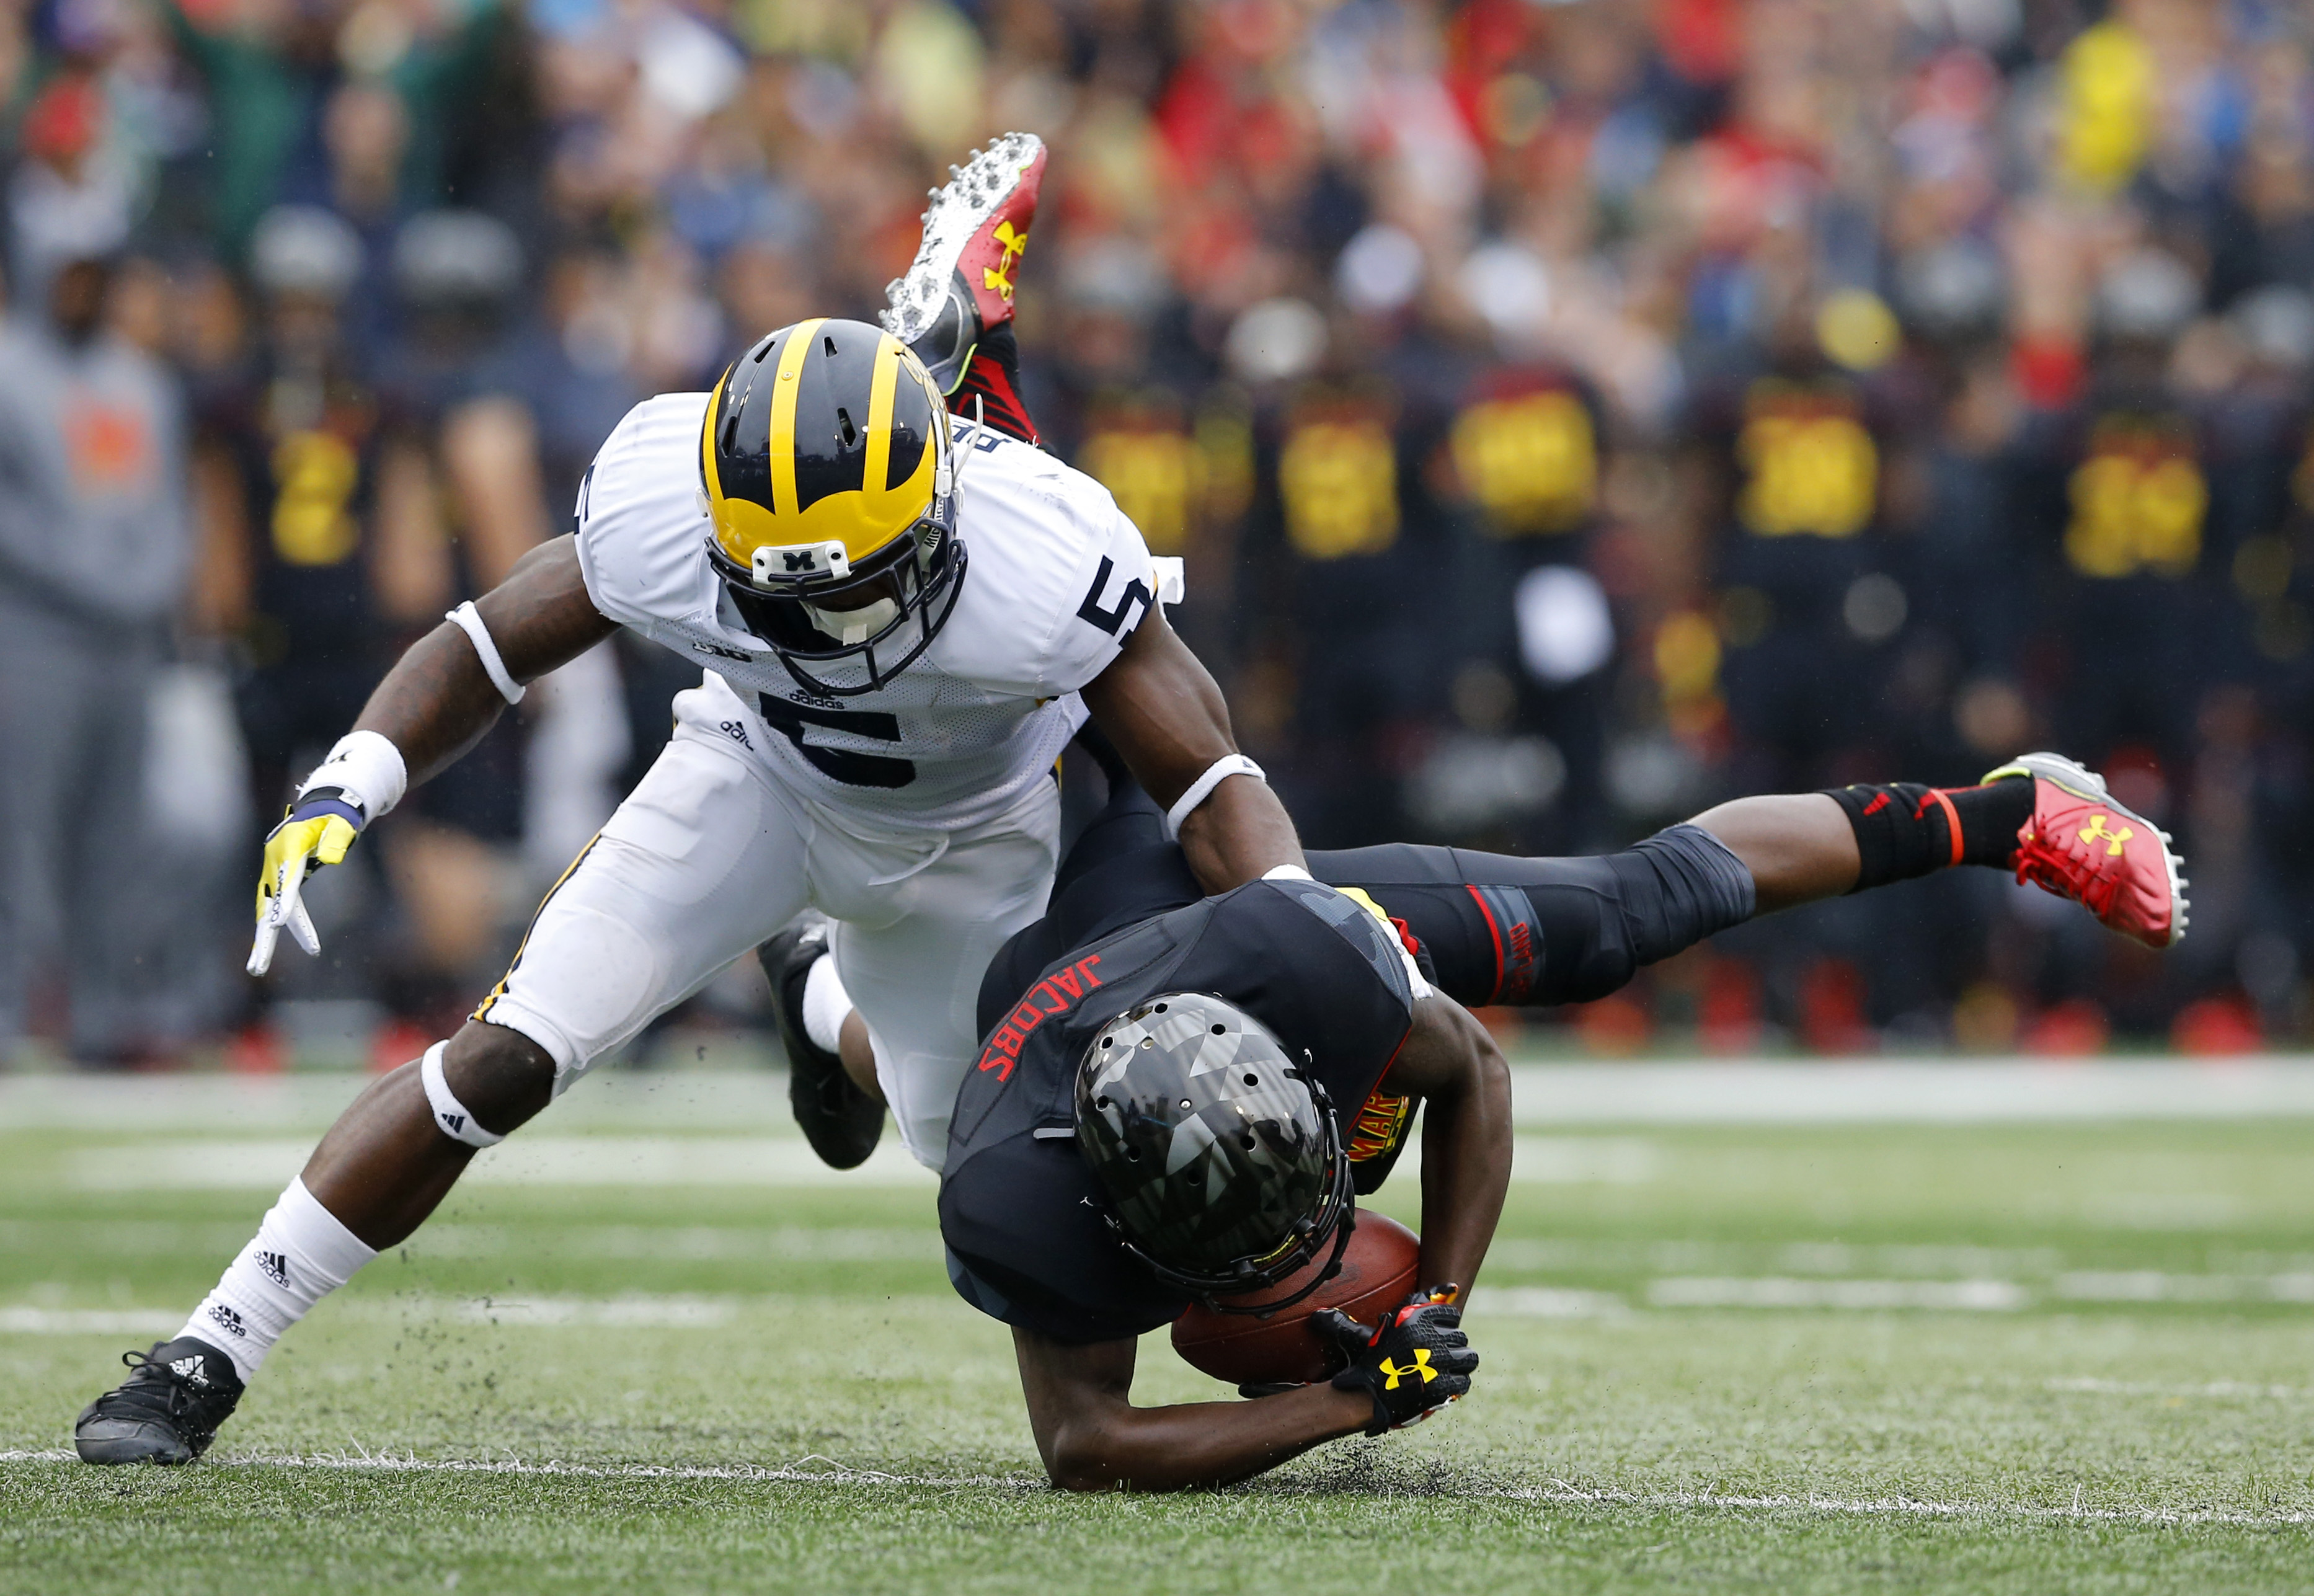 Michigan safety Jabrill Peppers, left, tackles Maryland wide receiver Levern Jacobs in the first half of an NCAA college football game, Saturday, Oct. 3, 2015, in College Park, Md. (AP Photo/Patrick Semansky)